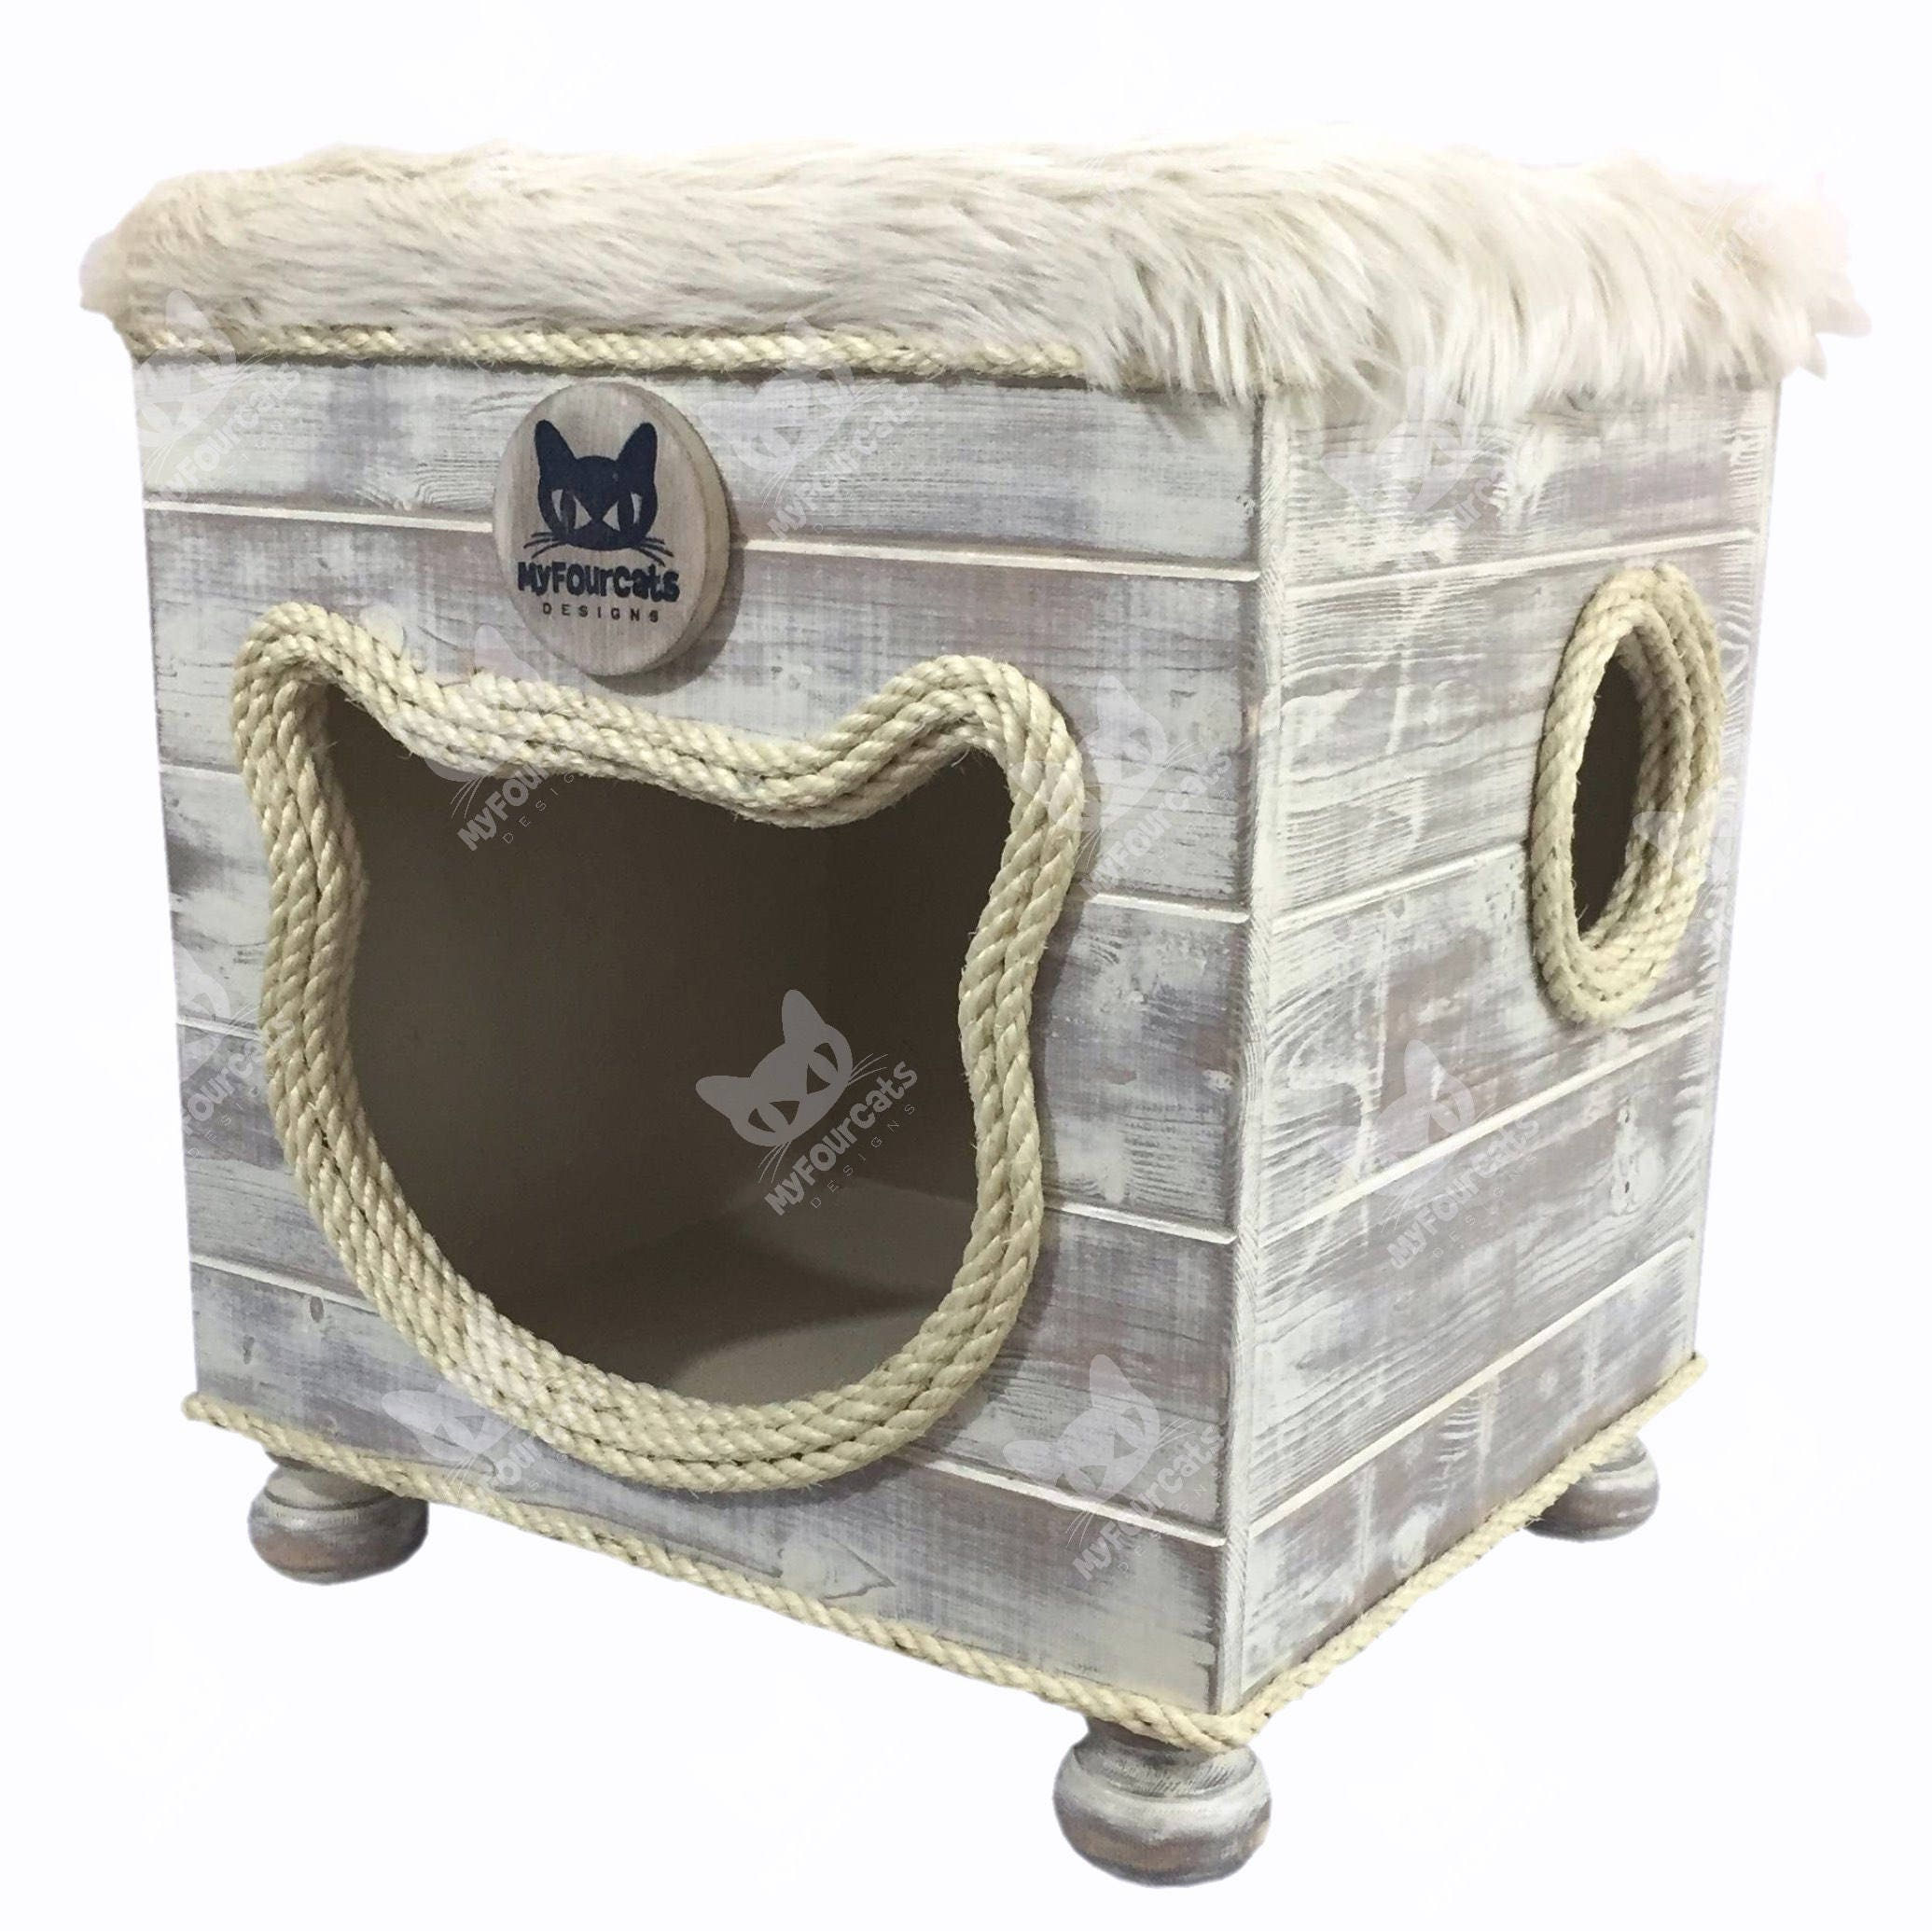 Cat House Pet House Pet Bed Cat Cottage Cat Bed Cat Cave Cat Play Furniture  Footstool Home Decor Shabby Chic Rustic